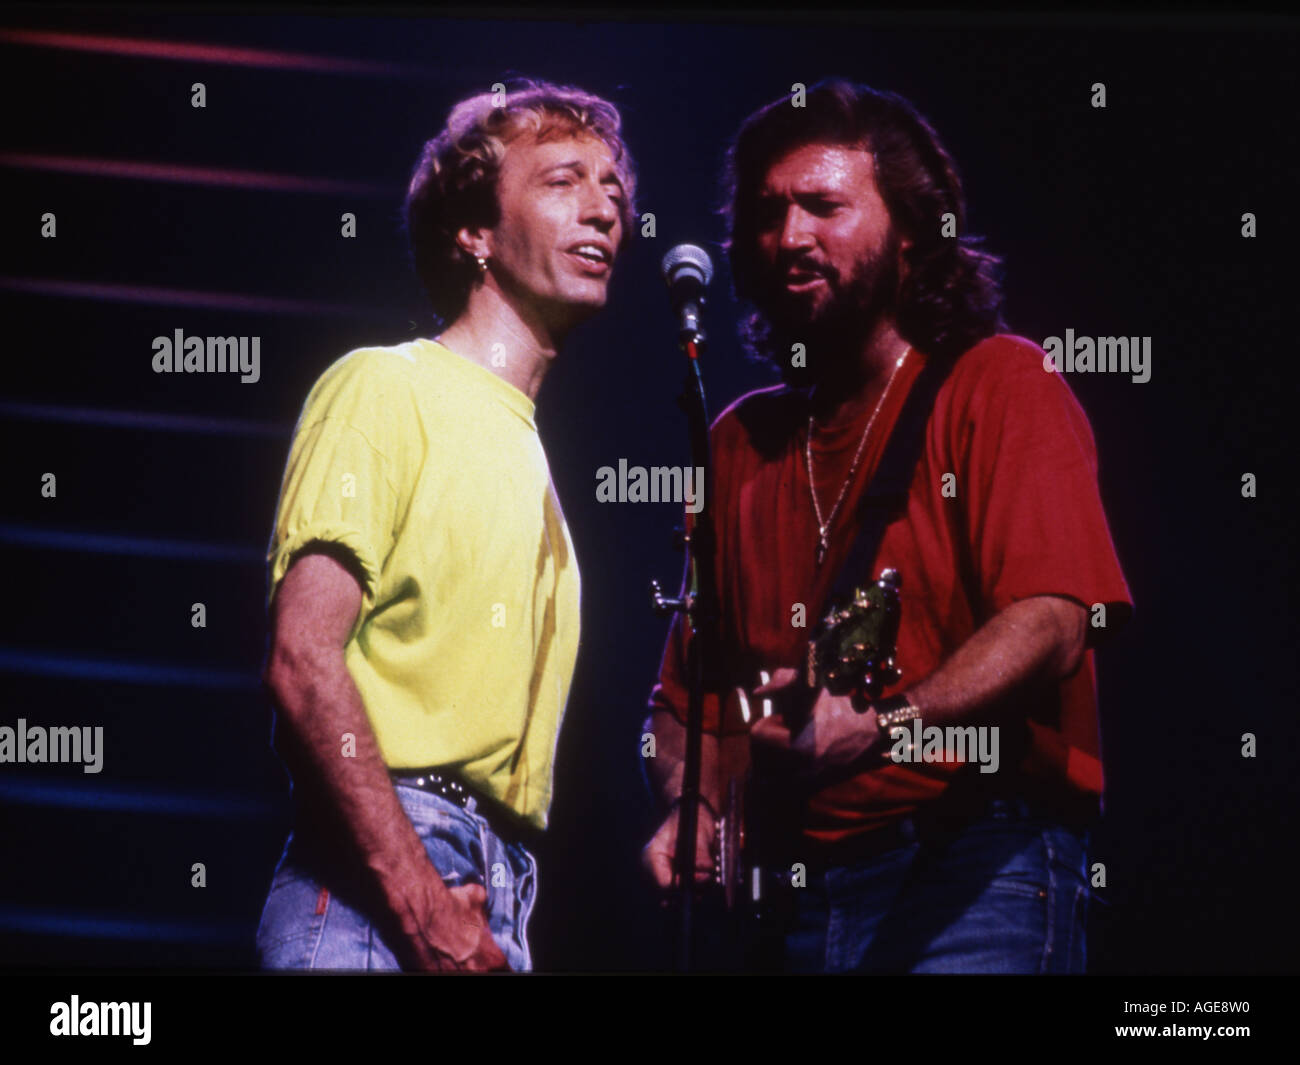 BEE GEES with   Robin Gibb at left and Barry Gibb - Stock Image